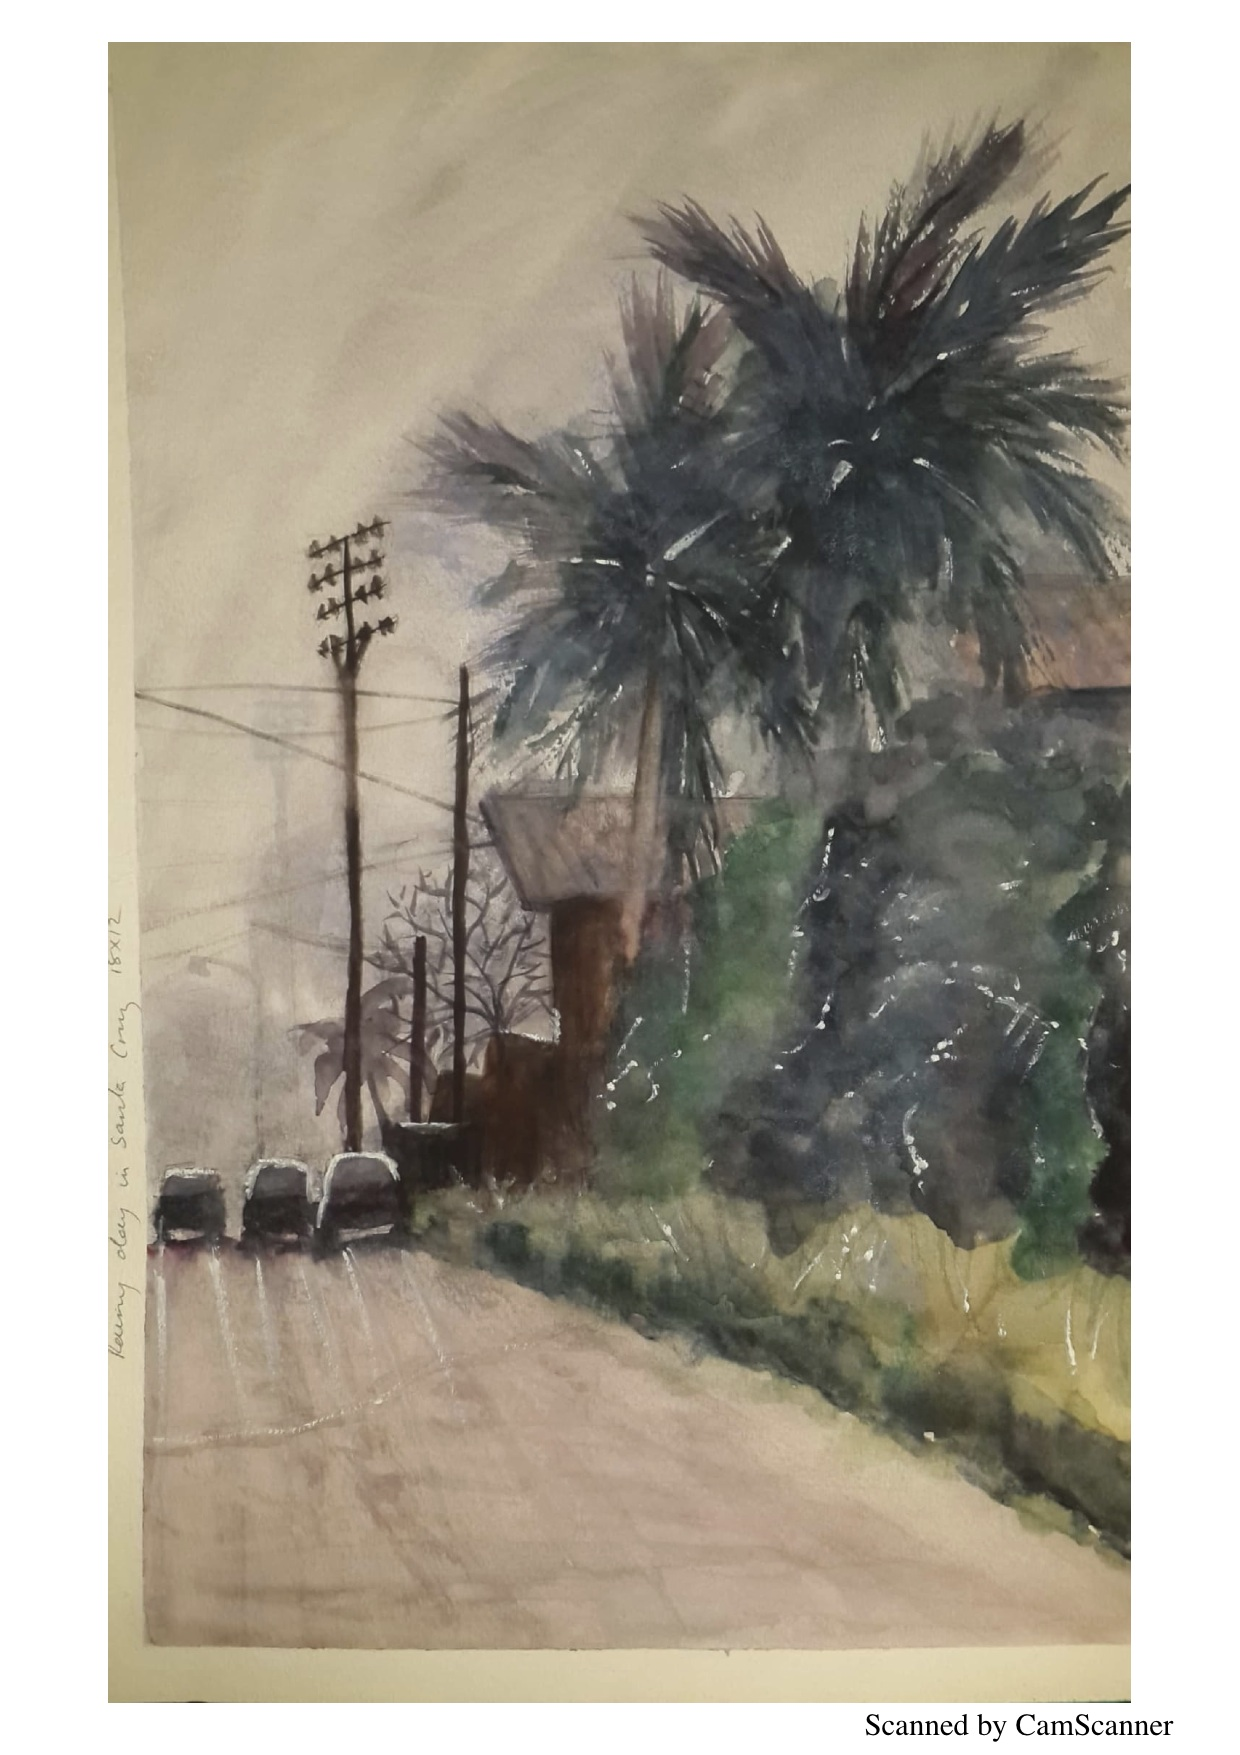 Rainy Day in Santa Cruz - Watercolour painting I did.